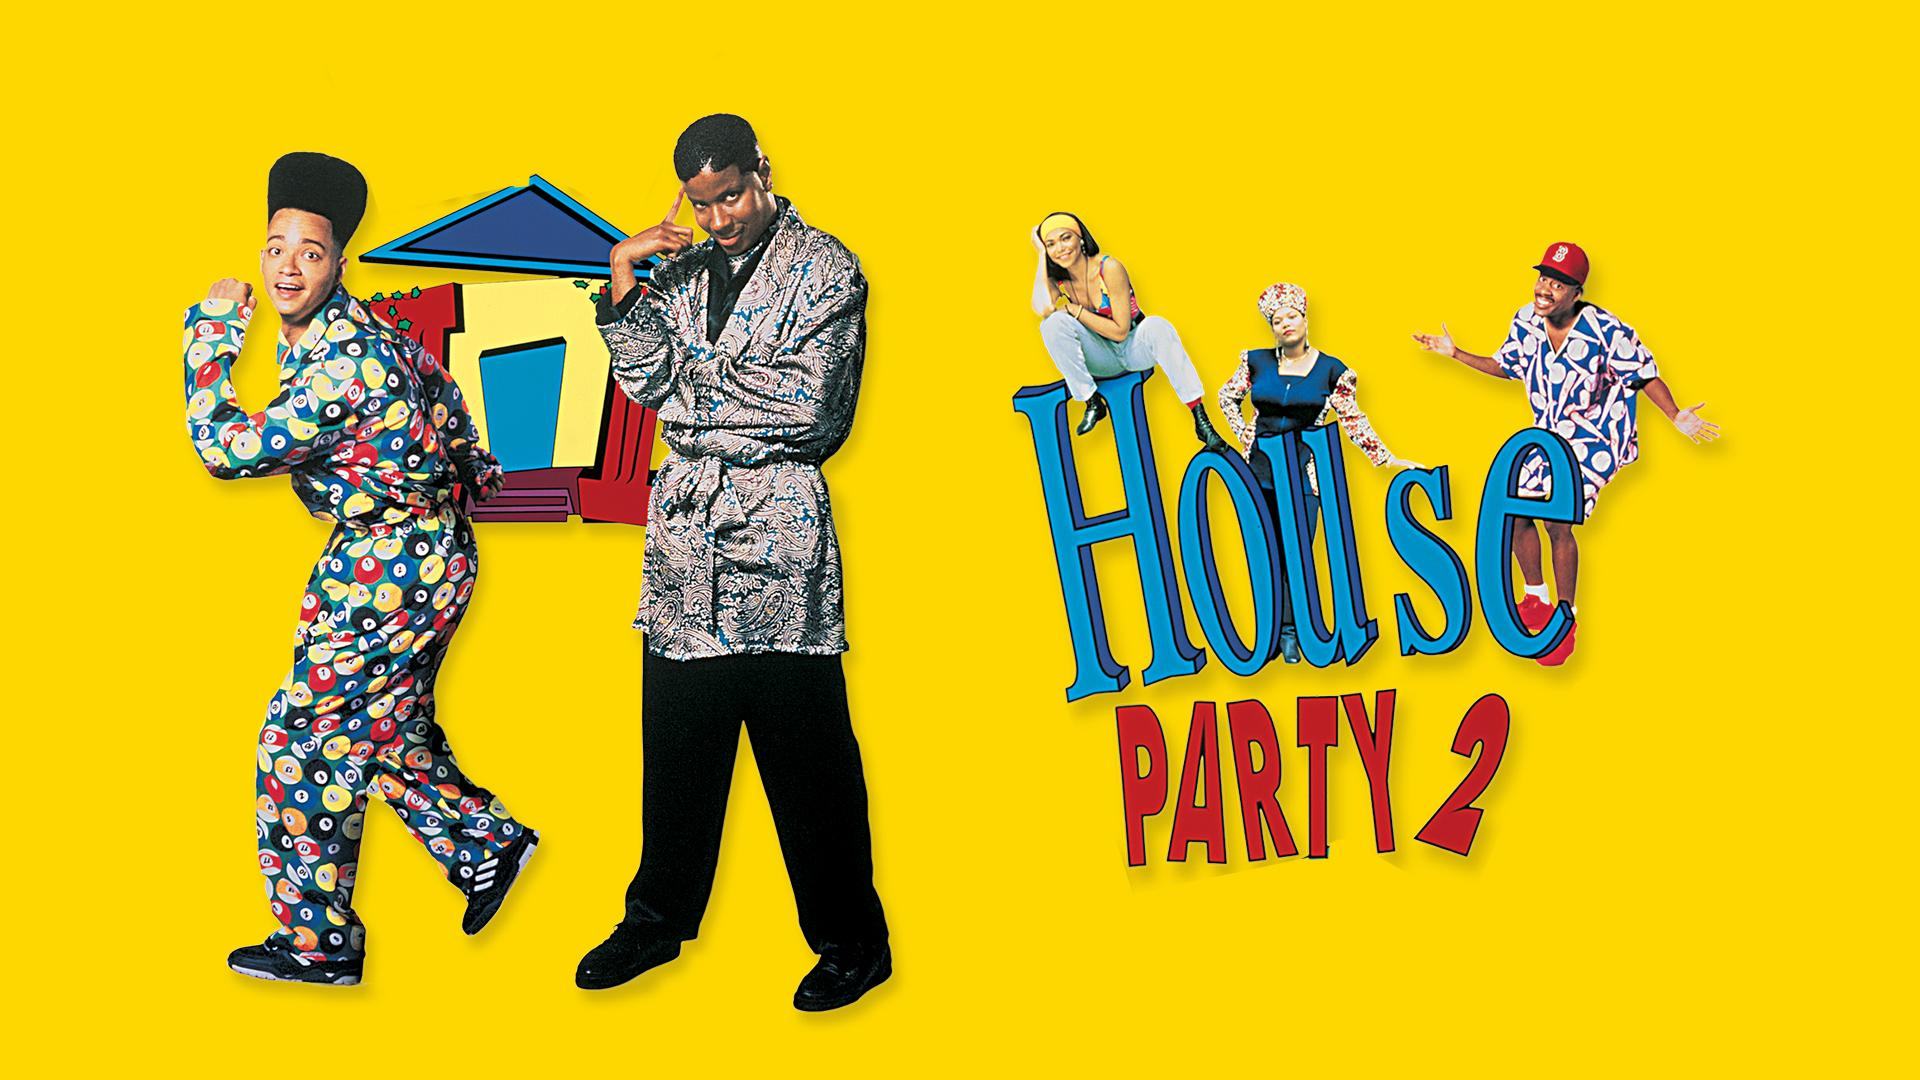 House Party 2 - New Releases category image